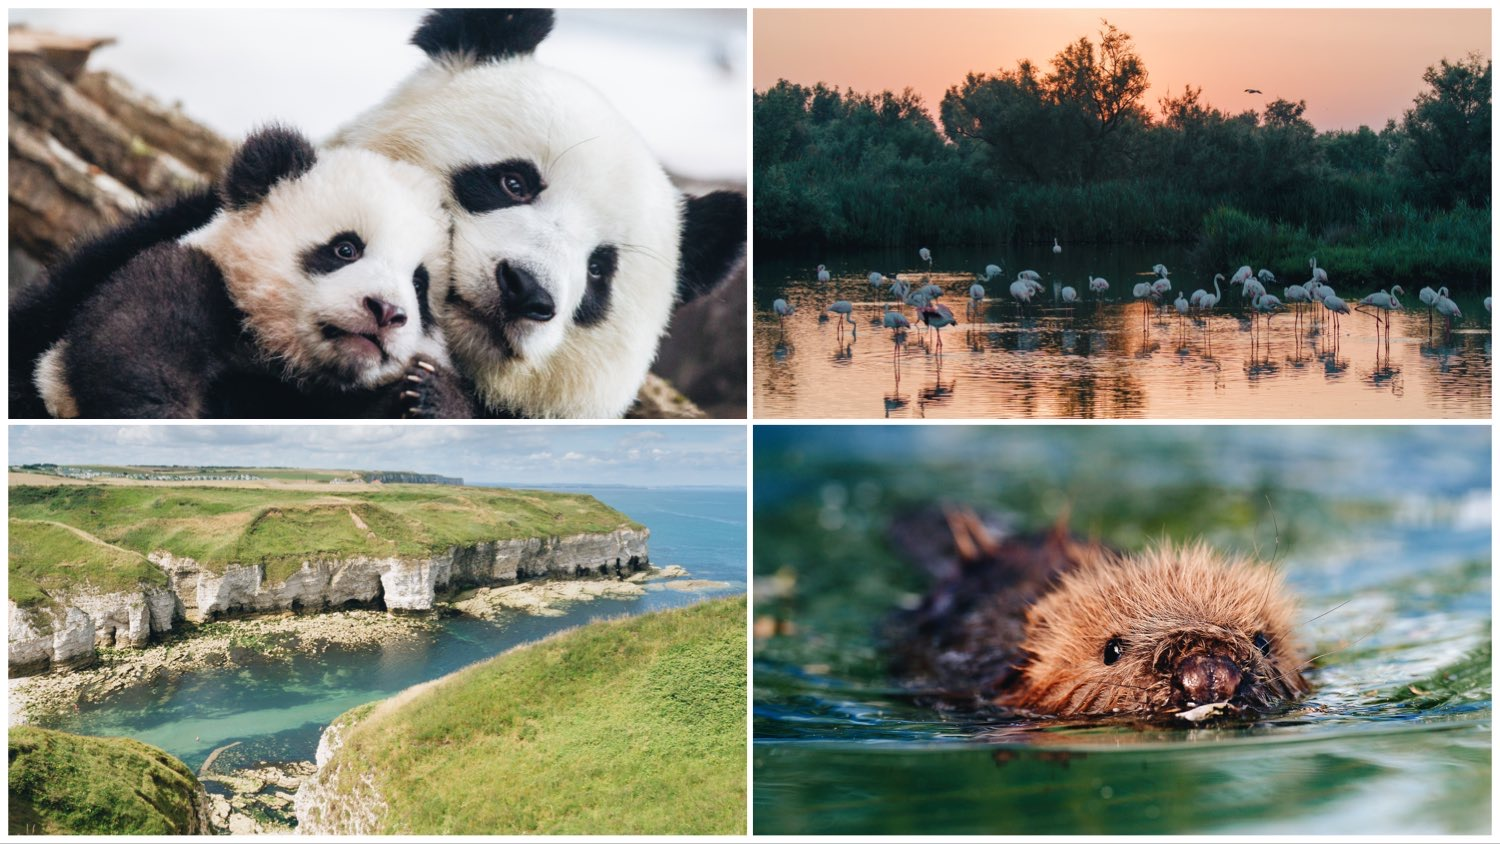 Four-way split image of a panda and her cub (top left), flamingos at dawn (top right), a cove in England (bottom left), and an otter kit (bottom right).